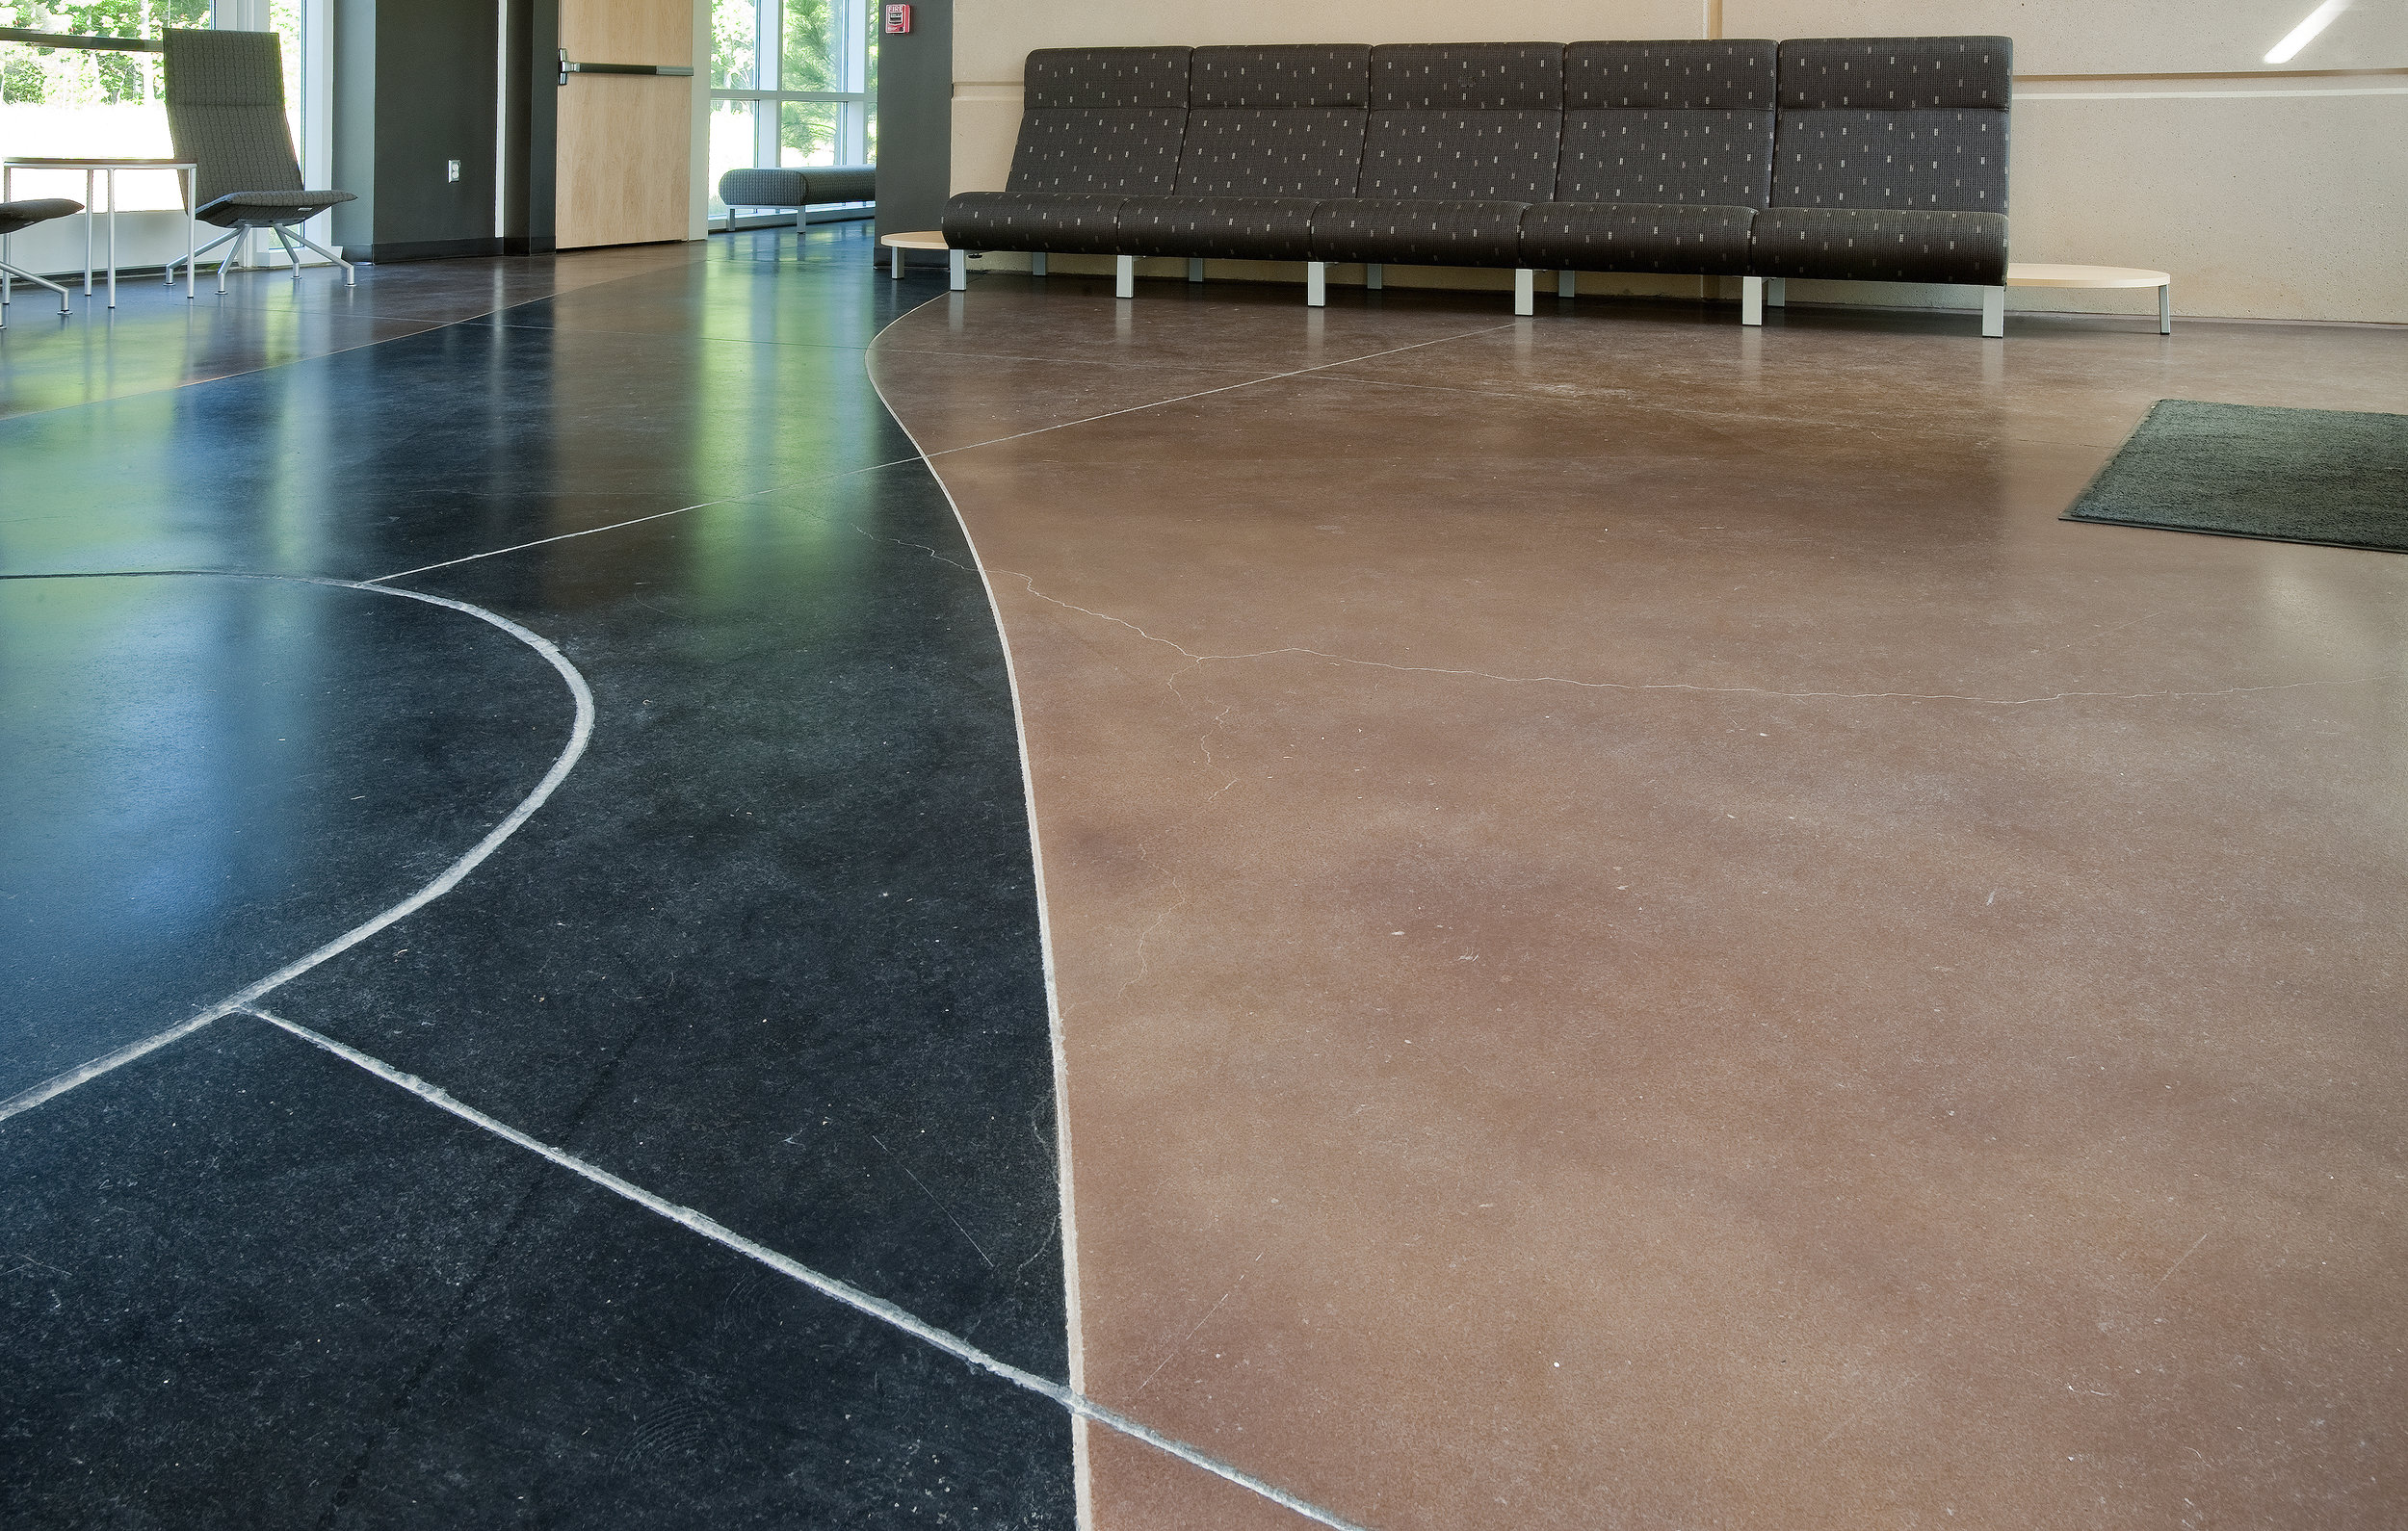 southern md electric cooperative - Stained & Sealed Concrete